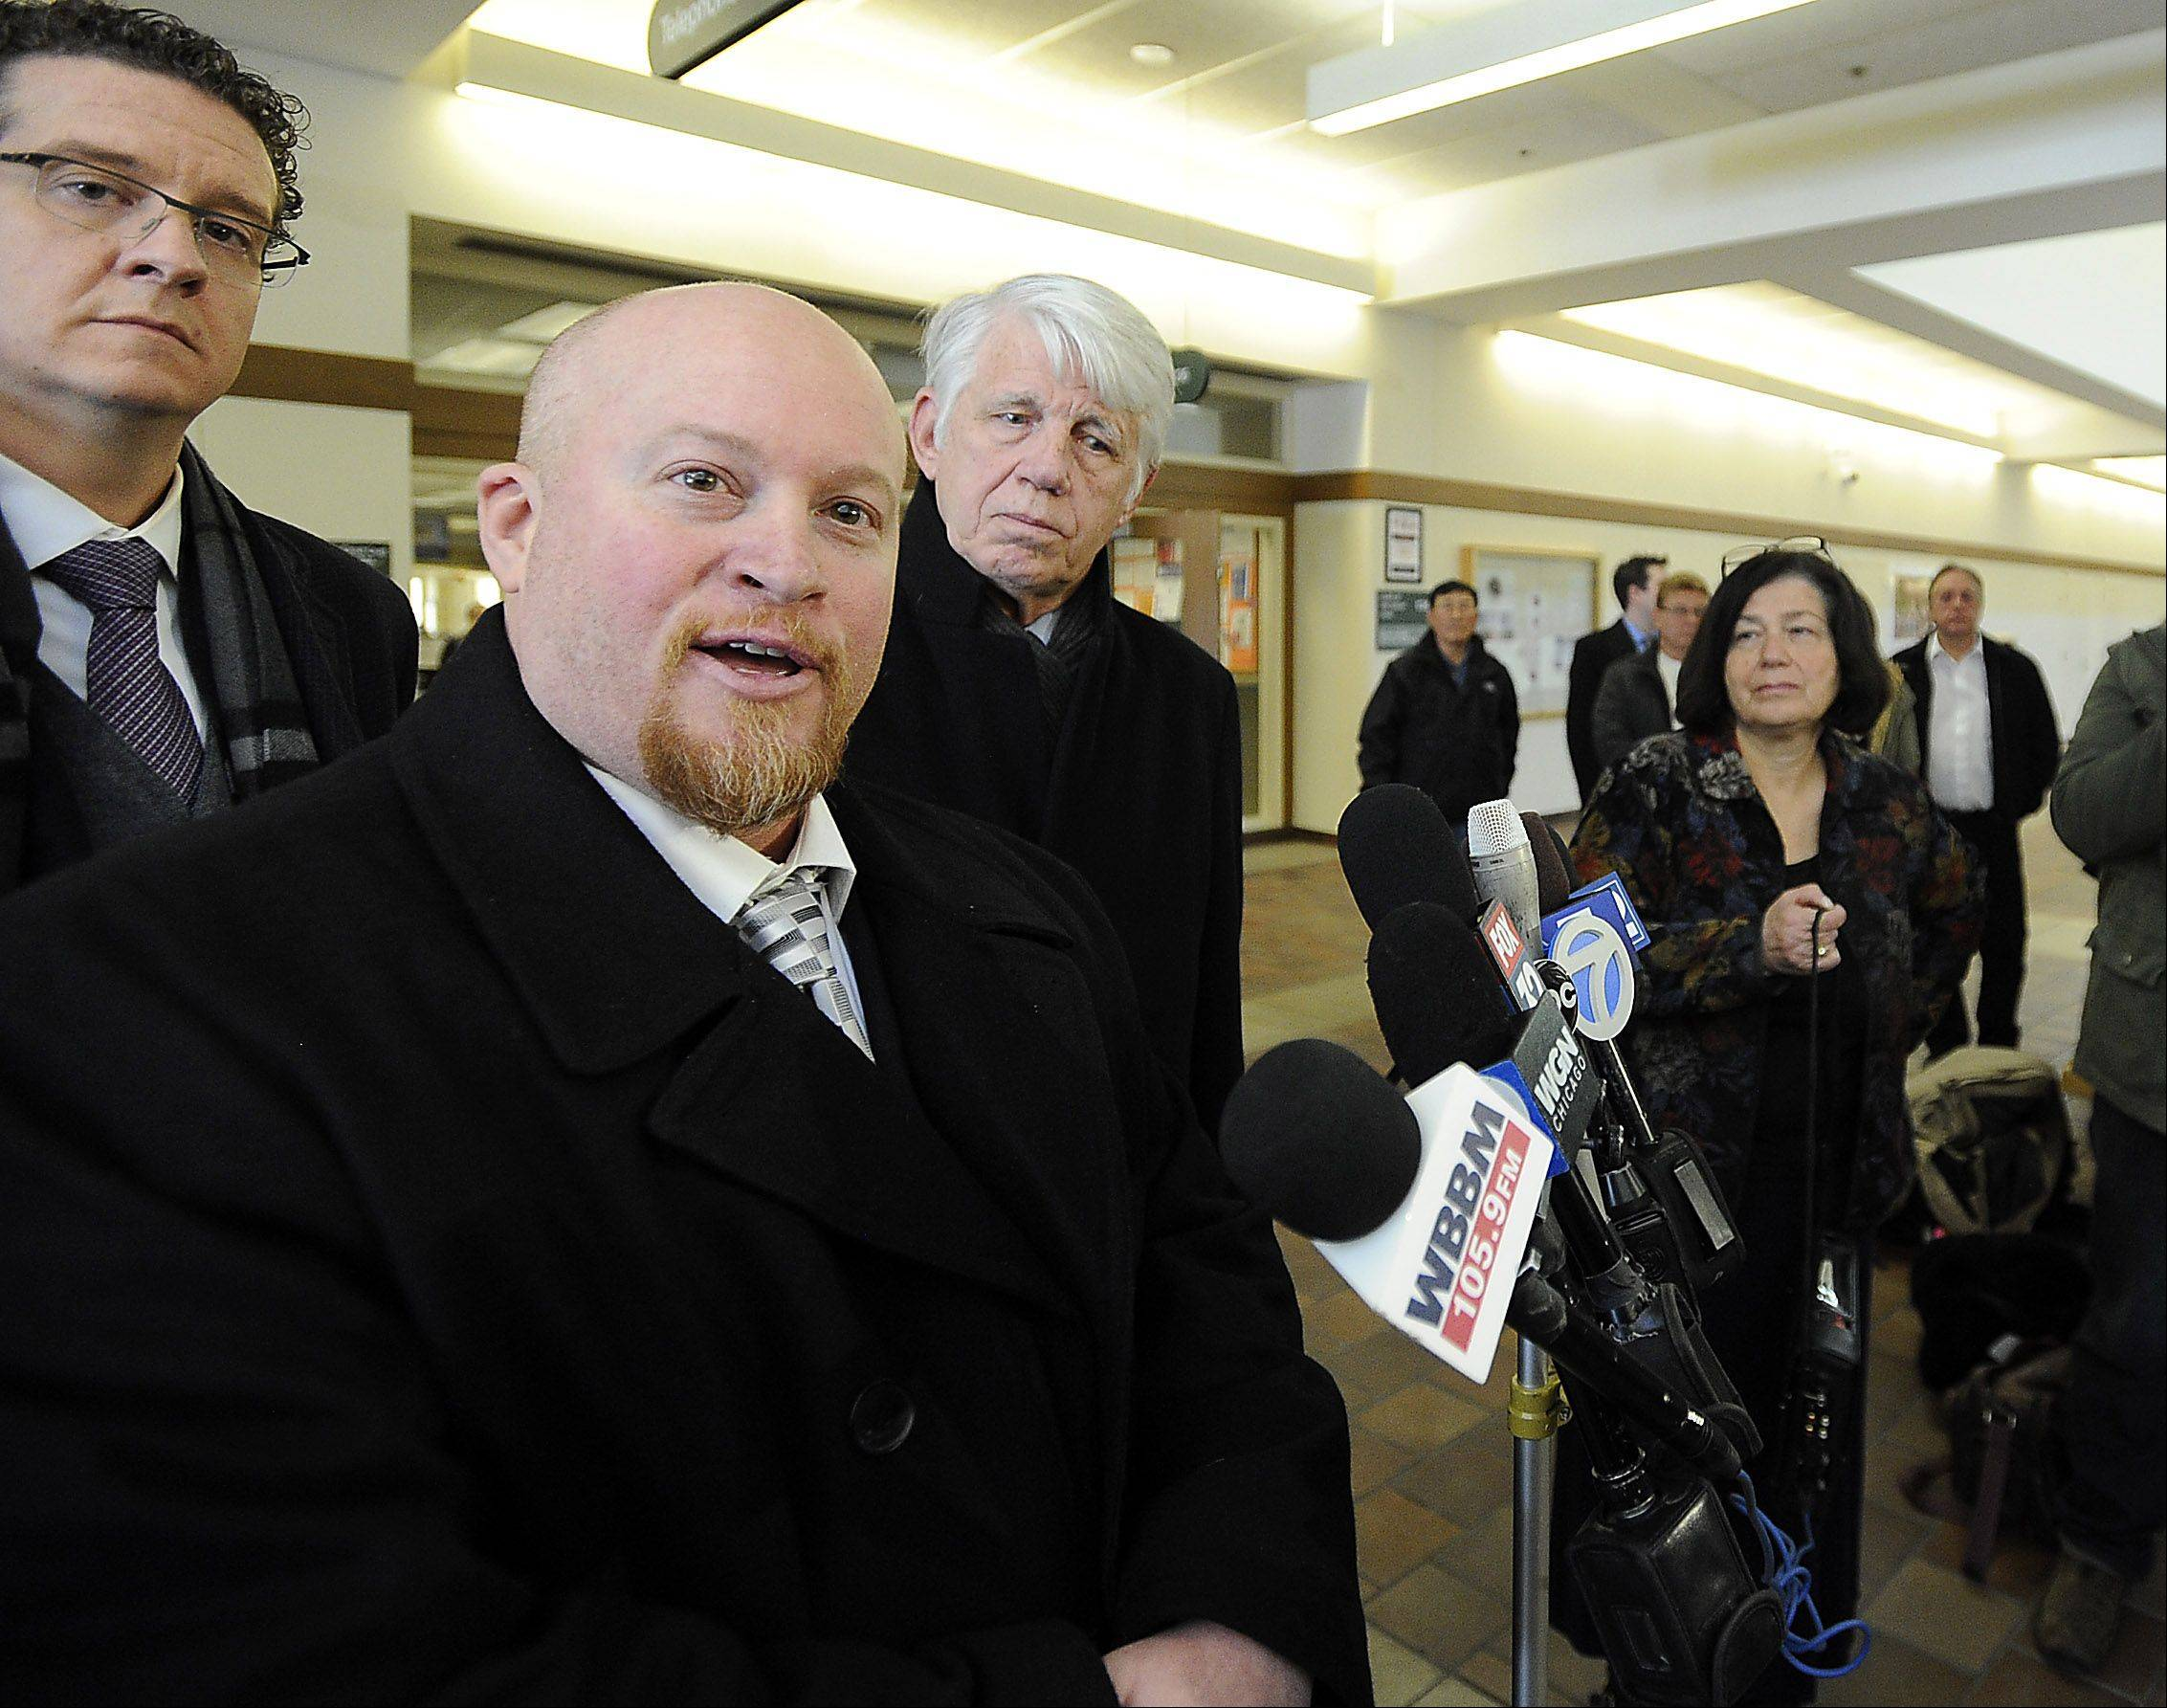 Former Maine West High School soccer coach Michael Divincenzo talks to reporters after he was acquitted of a hazing charge Wednesday.